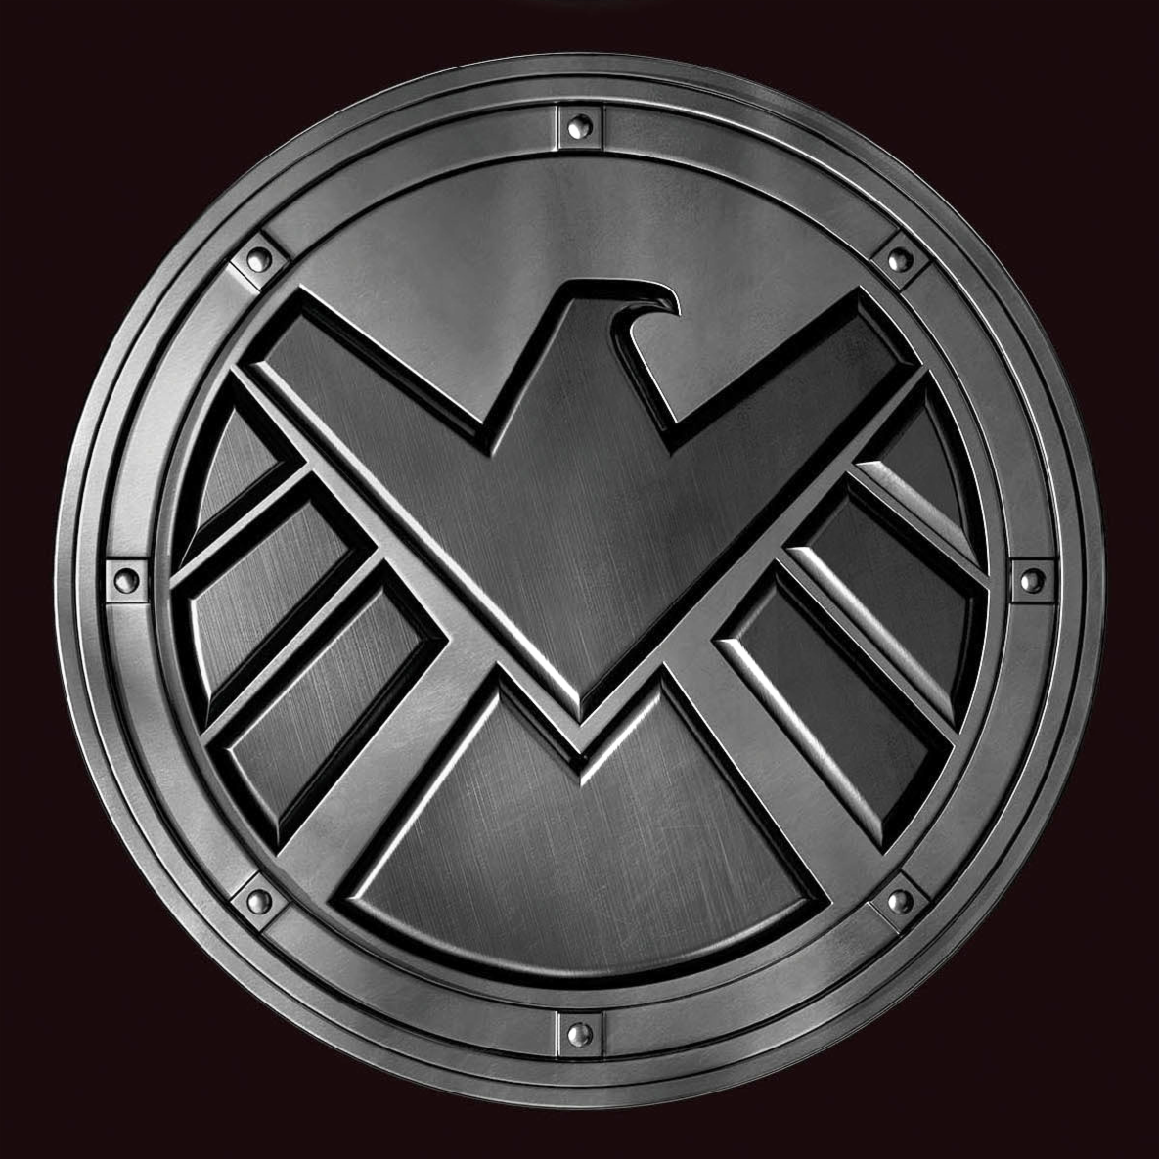 What does S.H.I.E.L.D. stand for?